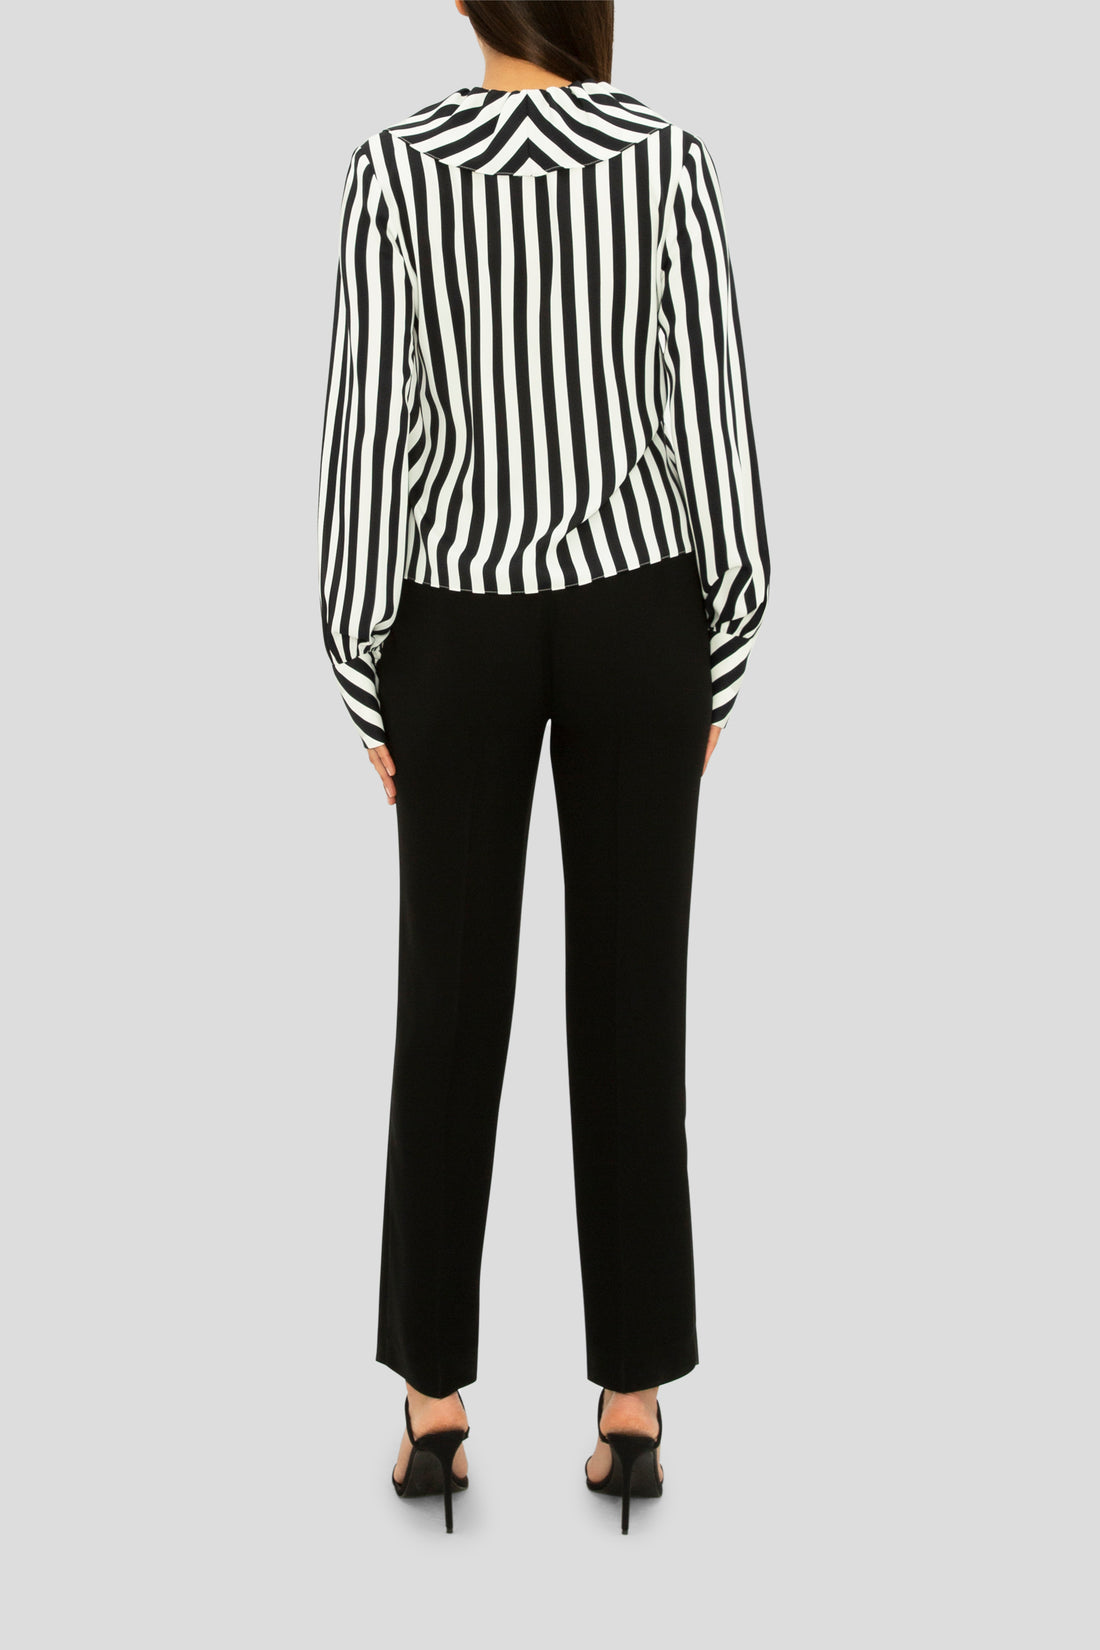 THE BLACK STRIPE FLIRT SHIRT